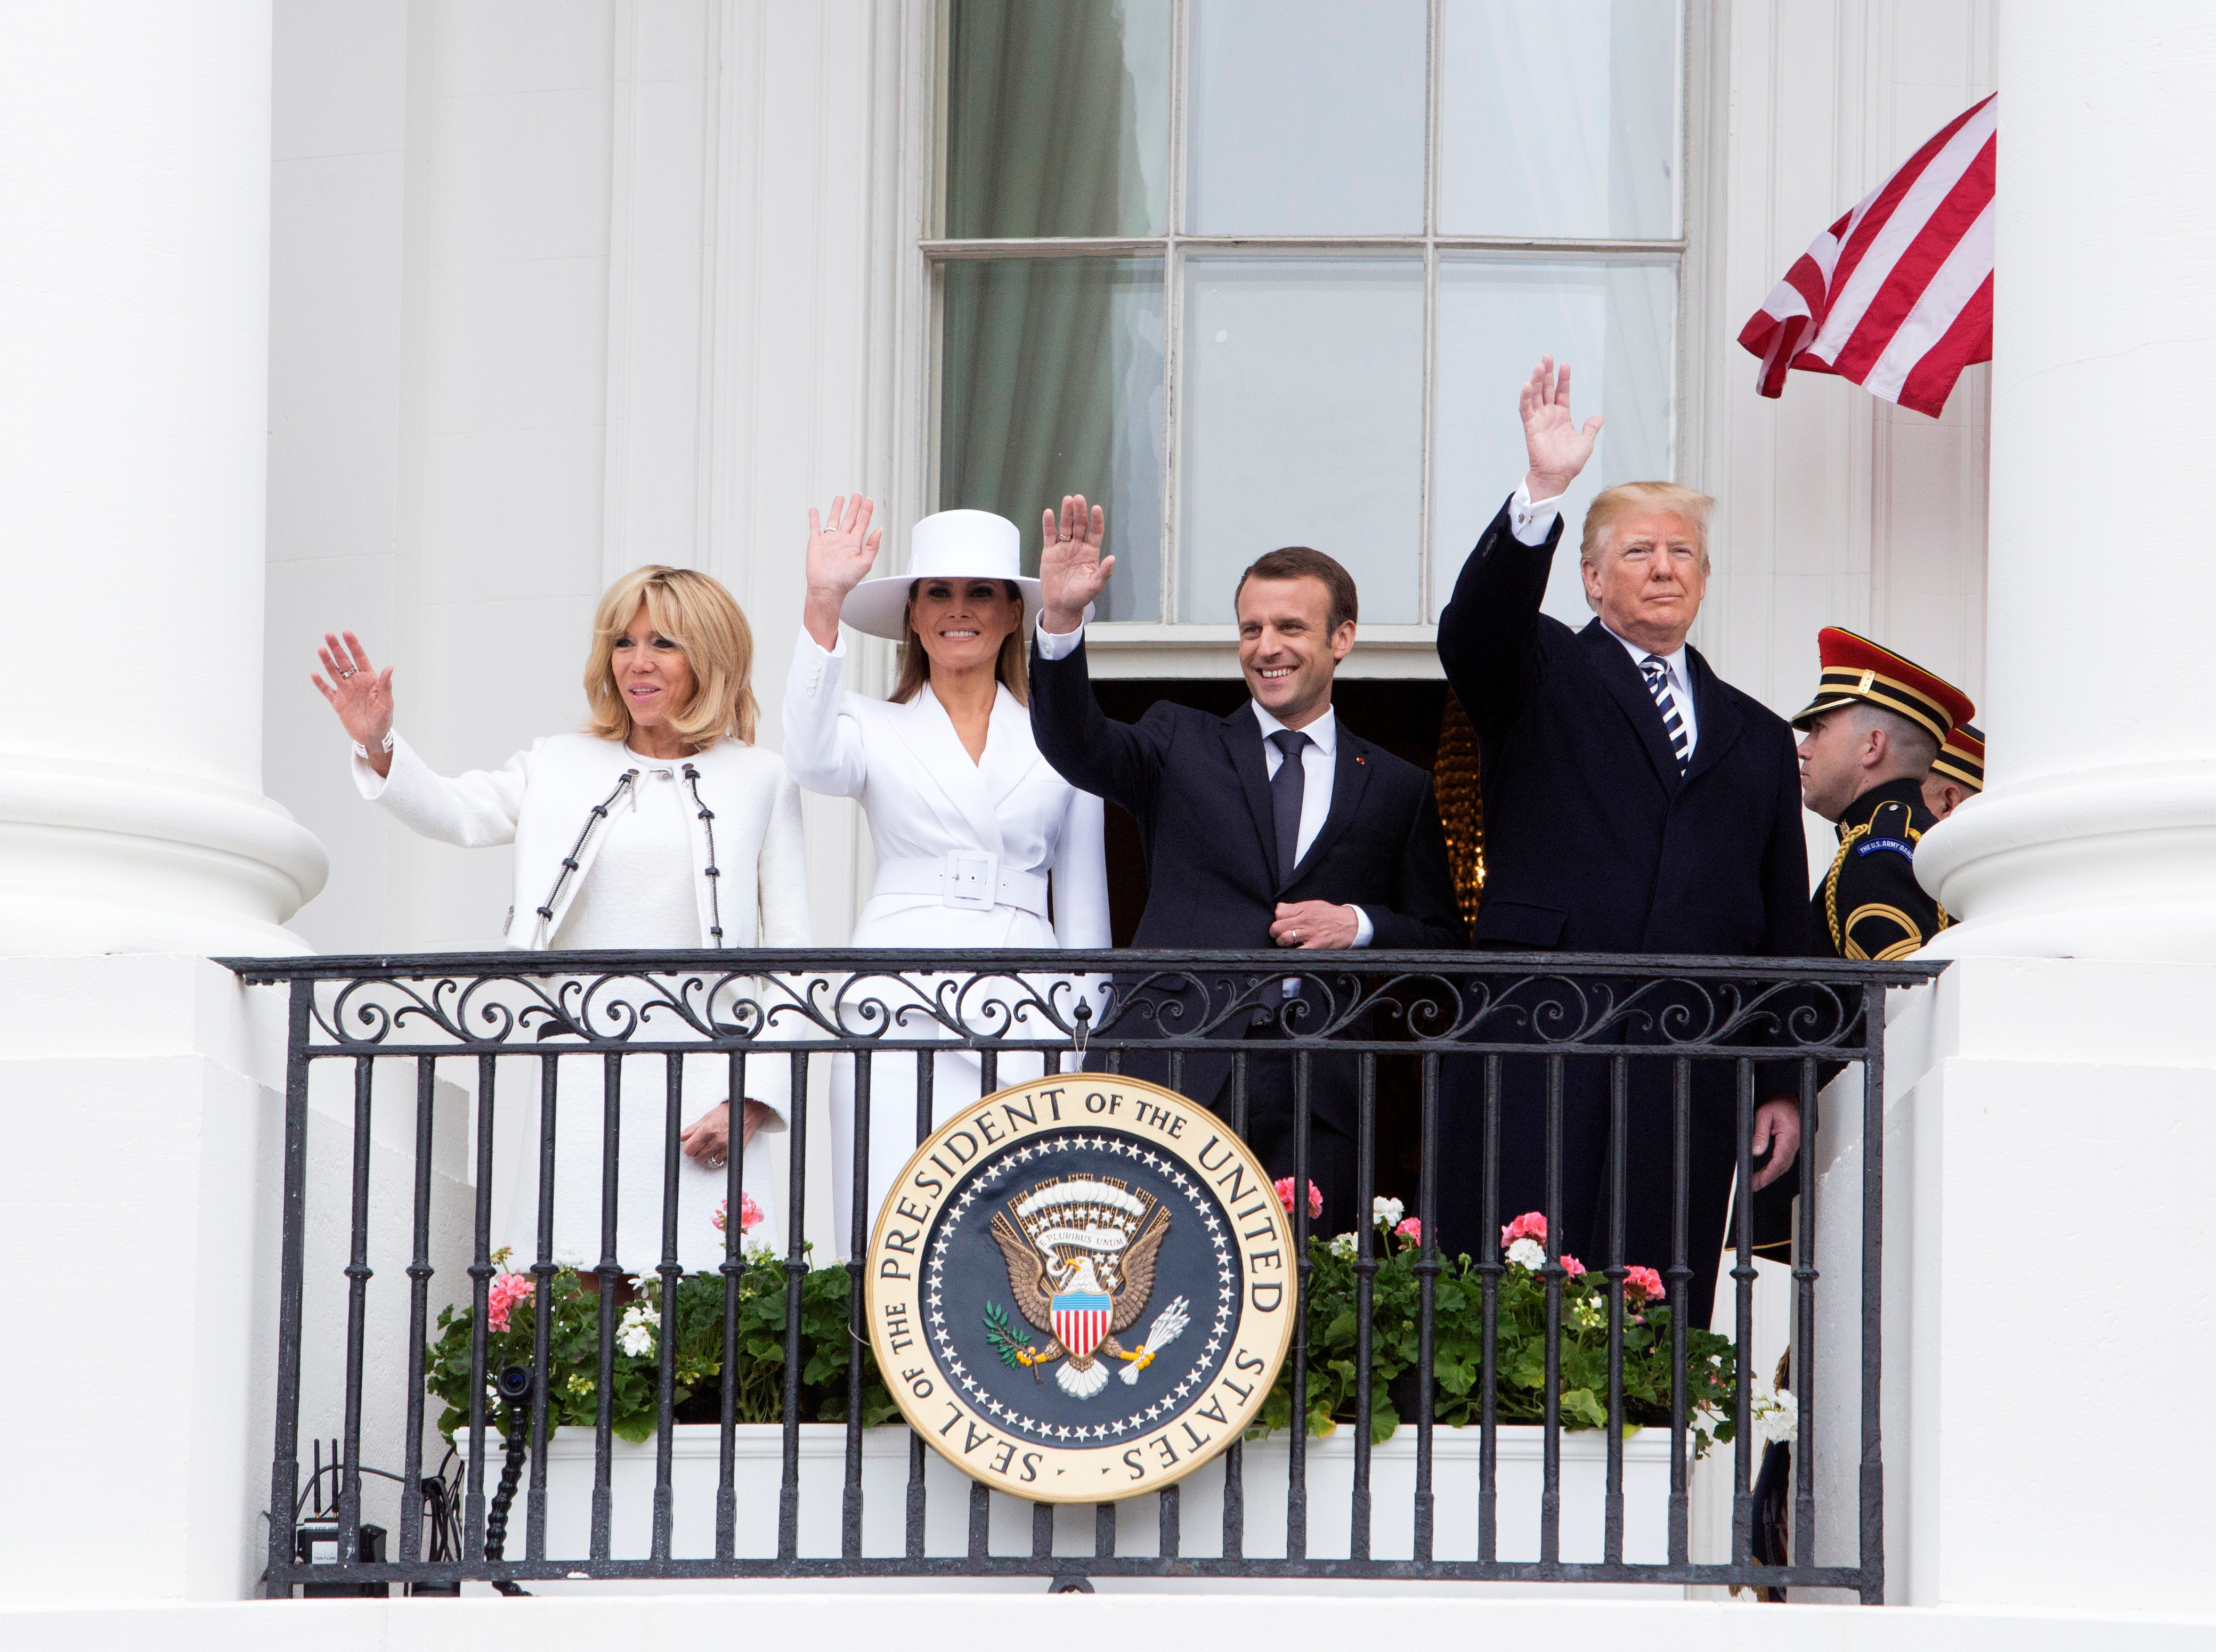 US President Donald J. Trump (R), his wife Melania Trump (2-L), French President Emmanuel Macron (2-R) and his wife Brigitte Macron wave from a balcony at the White House in Washington, DC, USA, 24 April 2018. President Macron will be in DC for three days for a state visit at the White House and an address to a joint session of Congress on 25 April.French President Macron visits USA, Washington - 24 Apr 2018